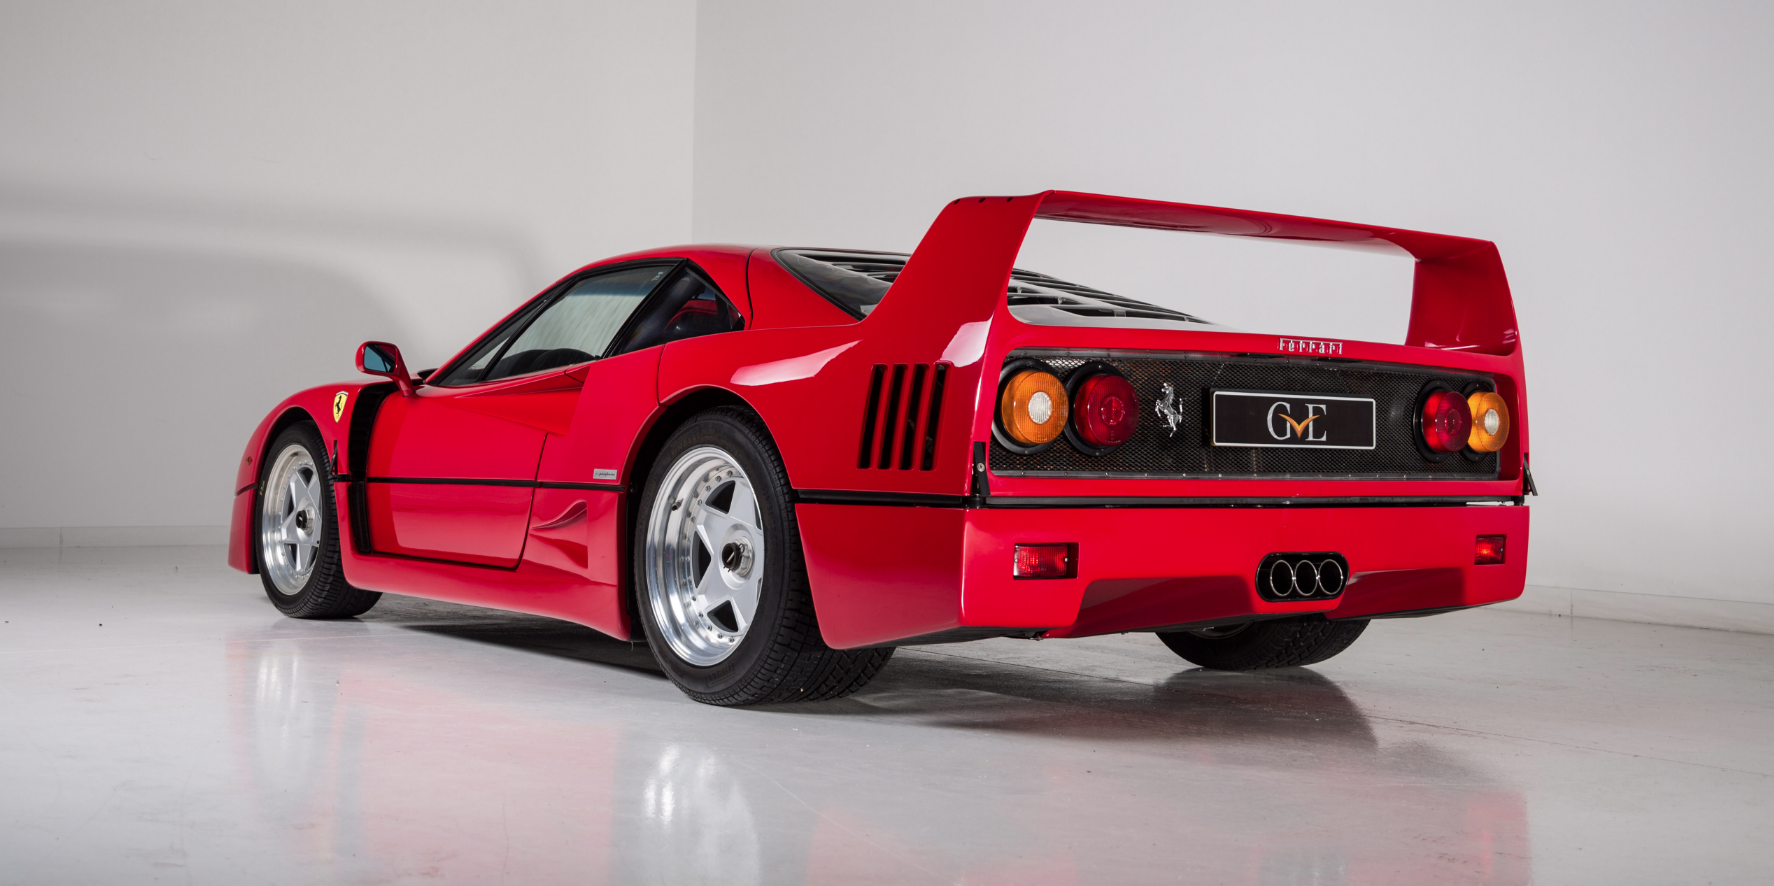 Eric Clapton's Former F40 Up For Sale At Almost A Million Pounds